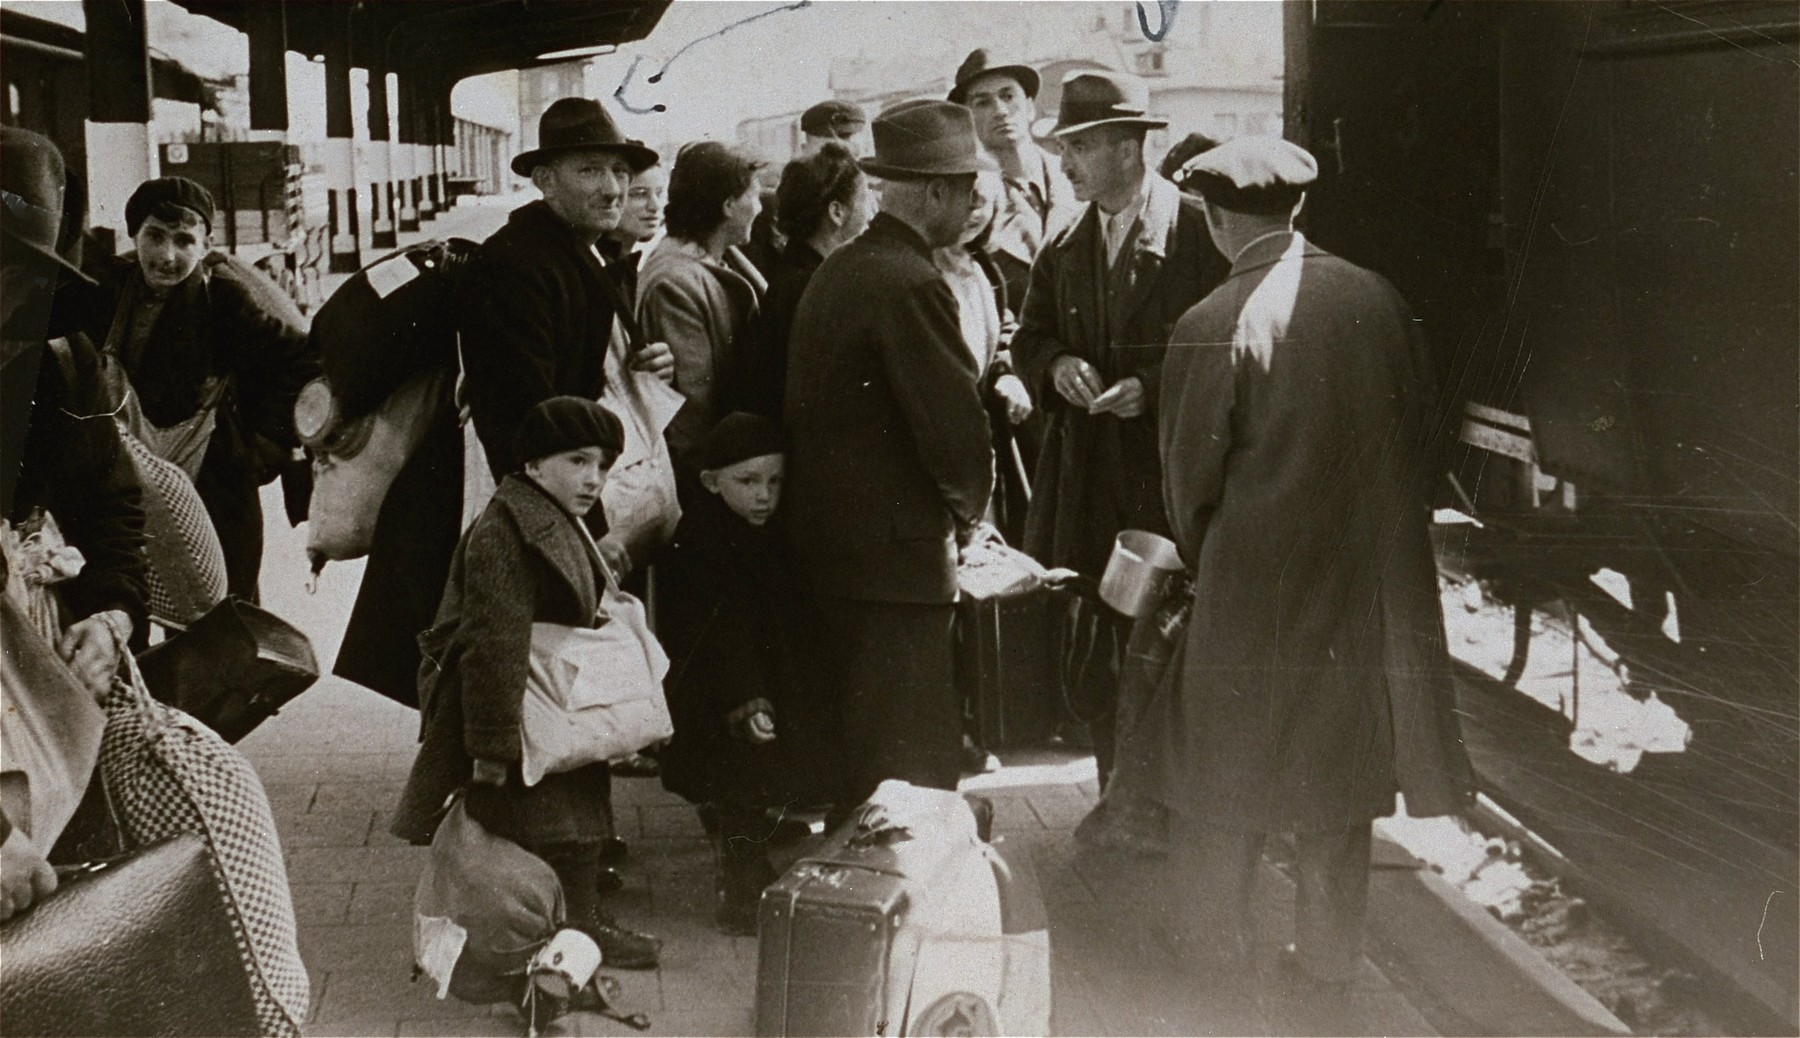 Jewish deportees from the Hanau, Gelnhausen and Schluechtern districts board the deportation train at the Hanau station.  Among those pictured is Kurt Levi (age 13, at the far left) from Ostheim, and Ludwig Gernsheimer from Rueckingen (in the middle) with his two sons, Hans (age 6) and Lothar (age 4). Gernsheimer was the chairman of the Jewish community of Rueckingen and was the donor's uncle.  He and his children perished.